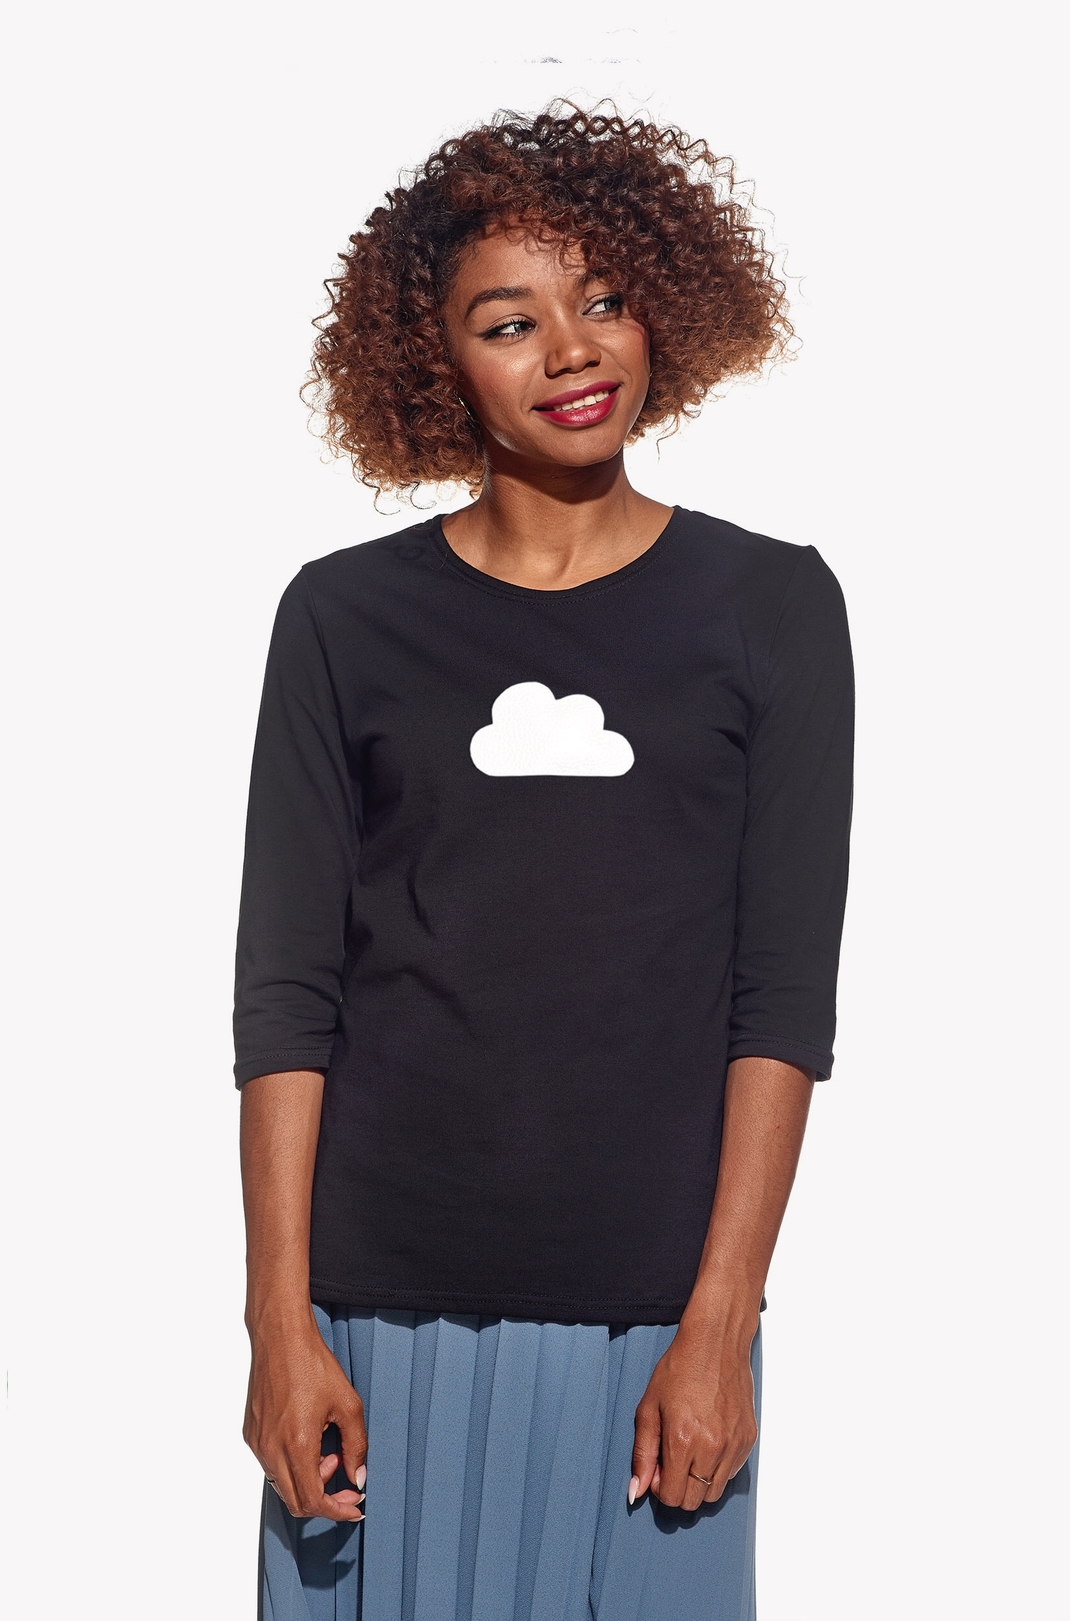 Shirt with cloud